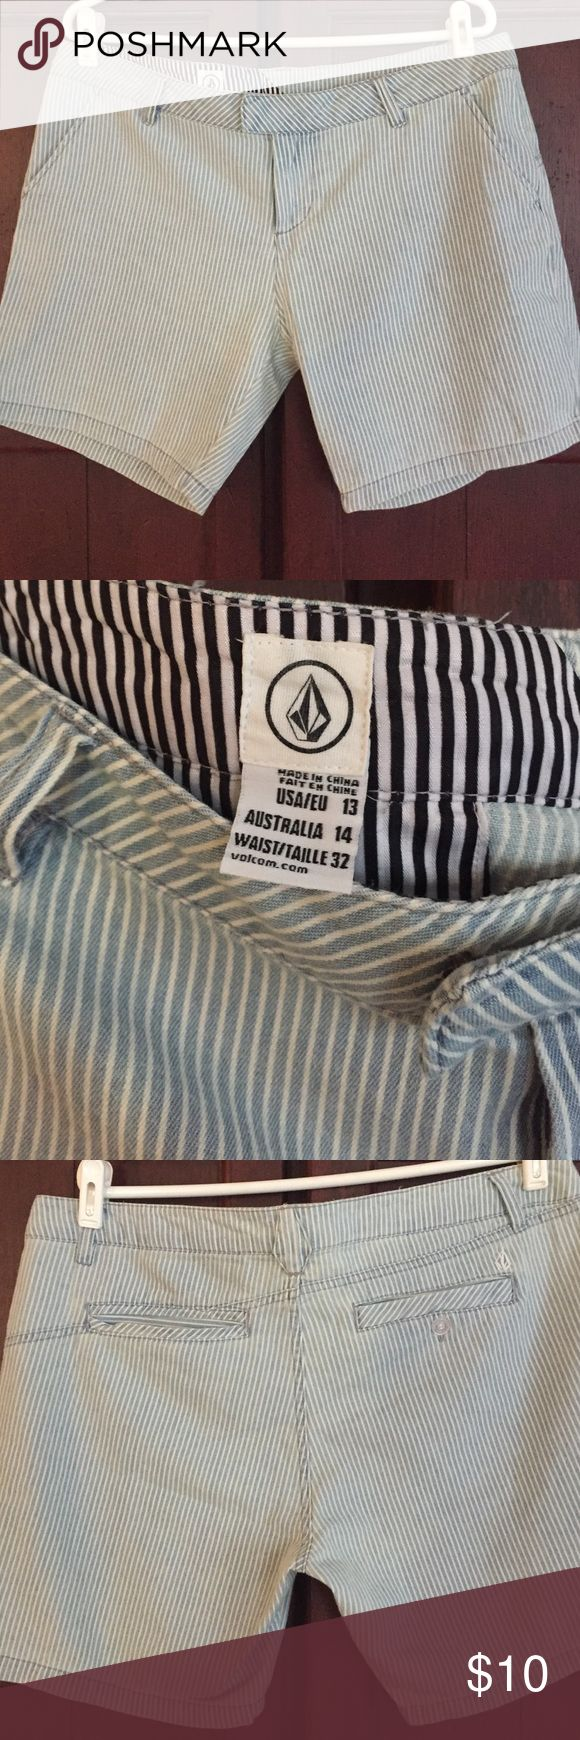 Volcom juniors shorts Blue and white striped volcom shorts. Never worn. Volcom Shorts